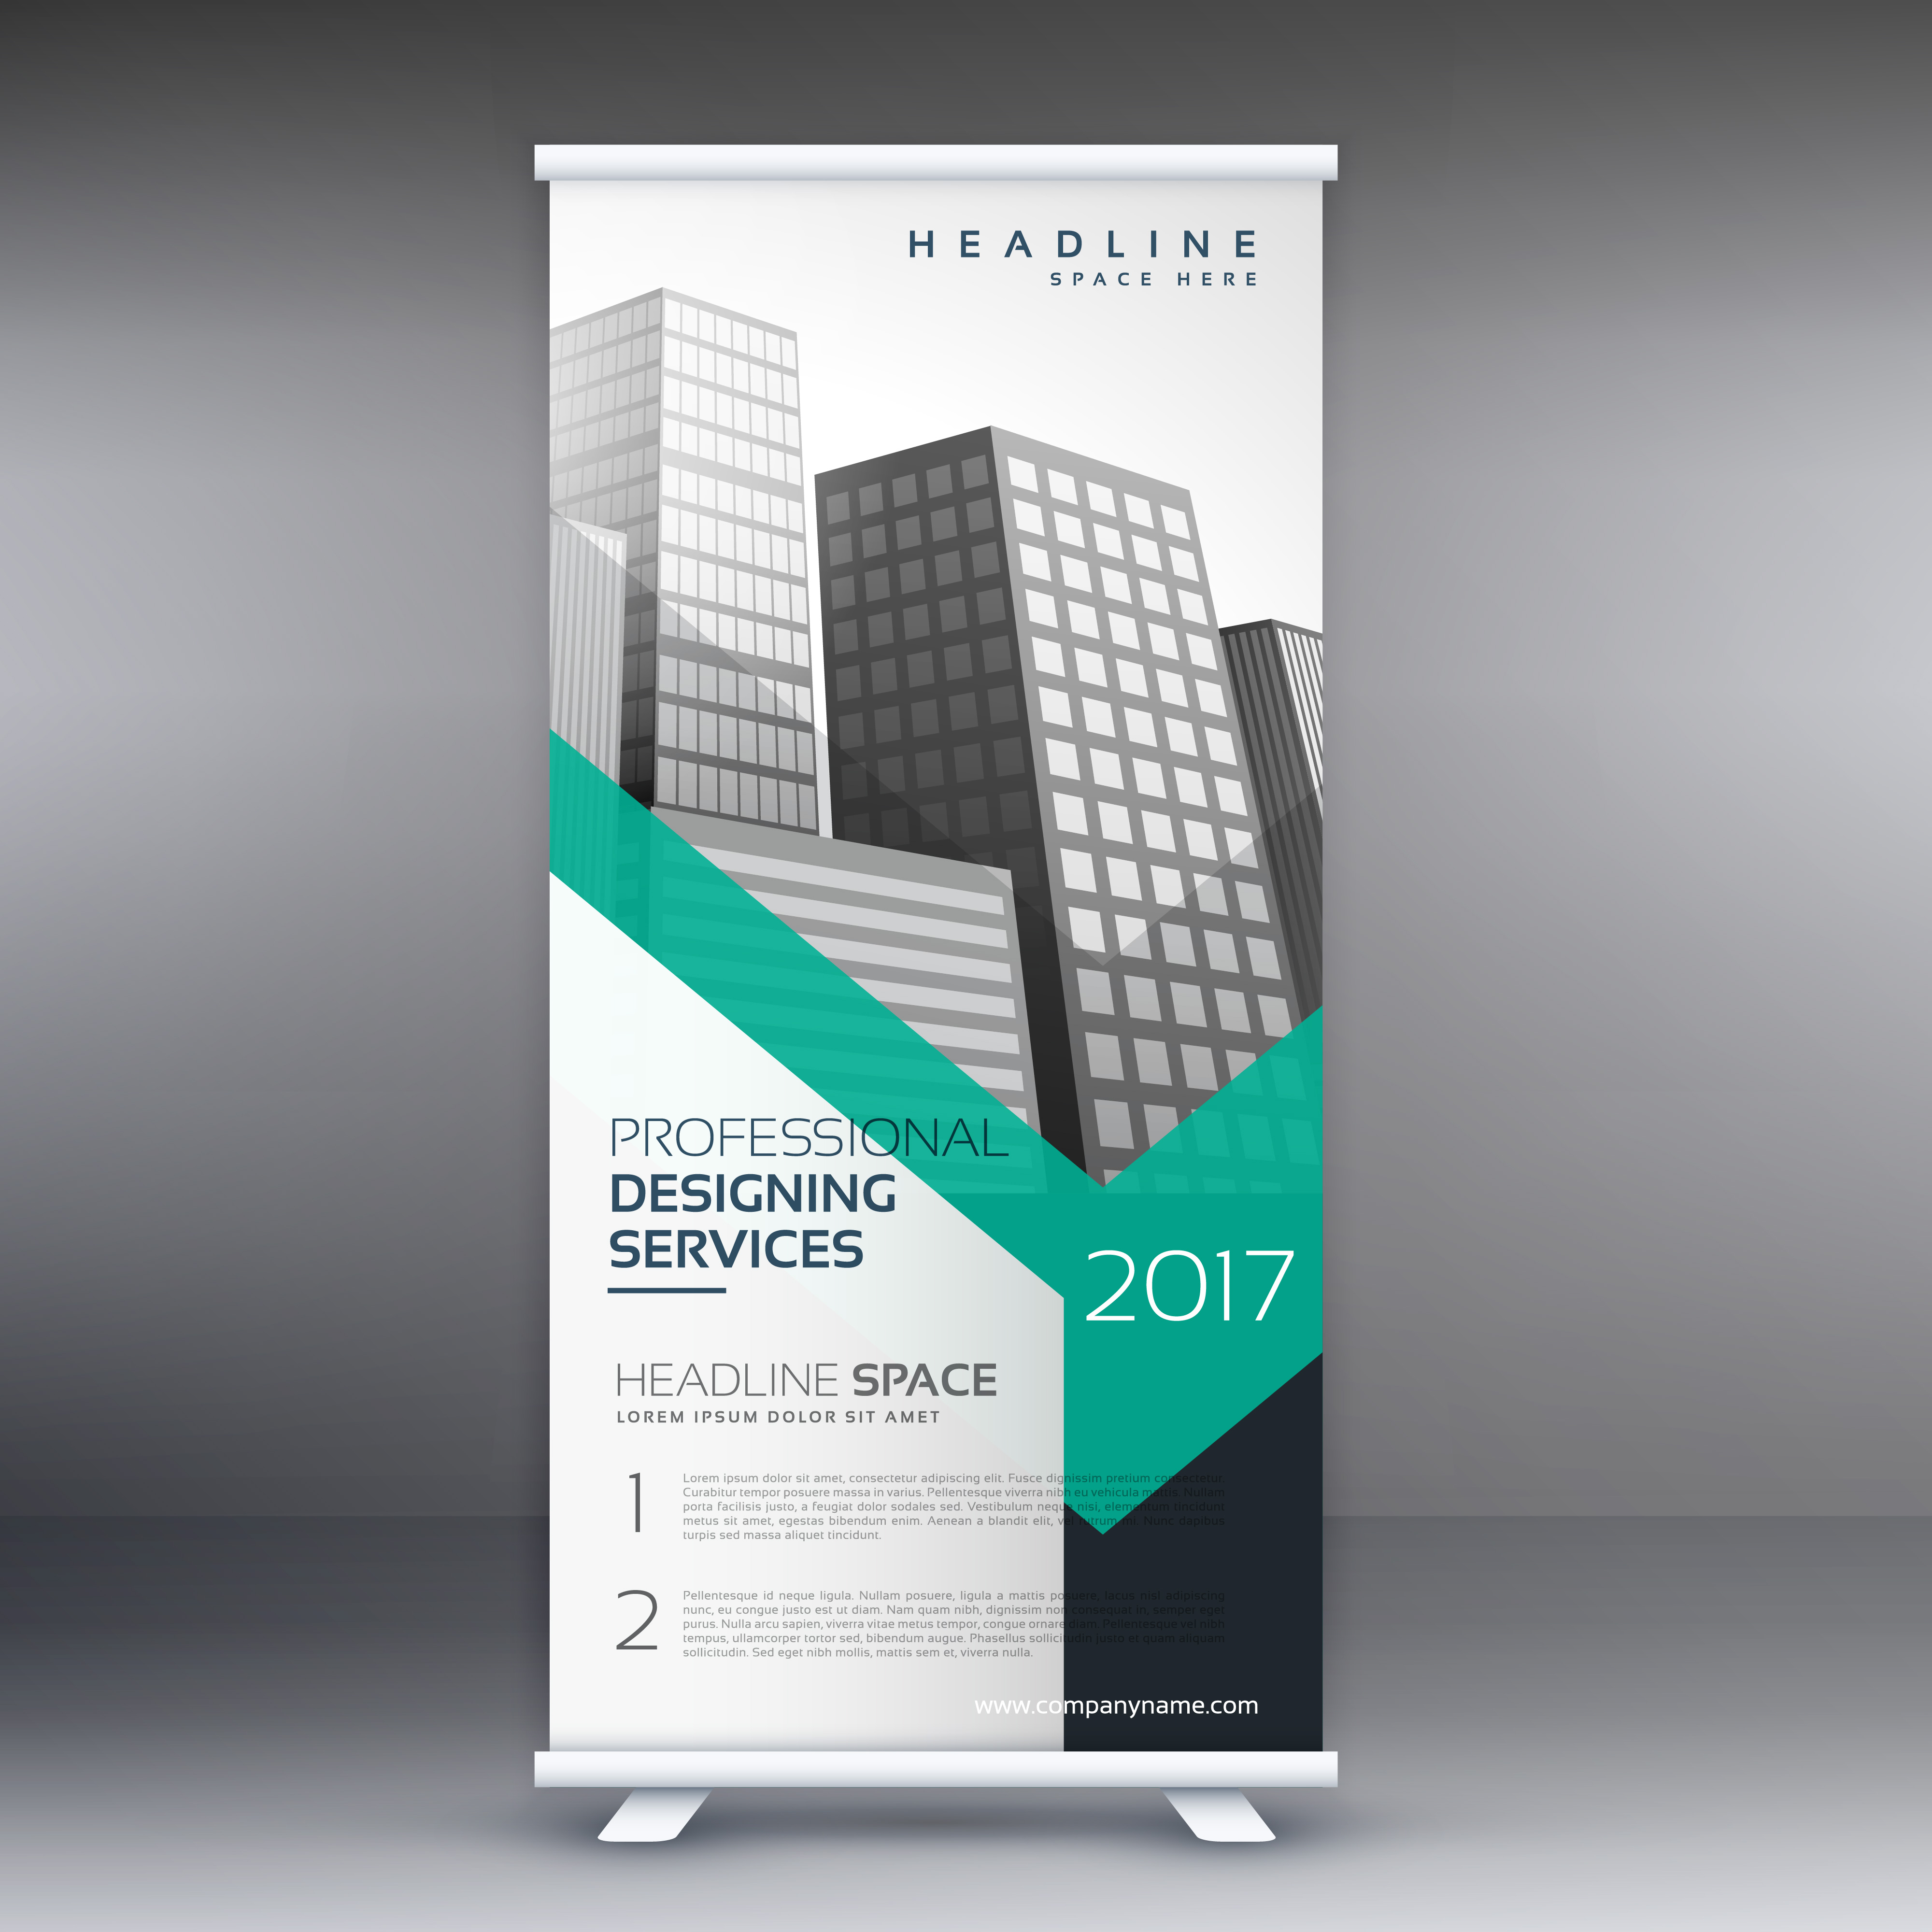 business presentation roll up banner standee template